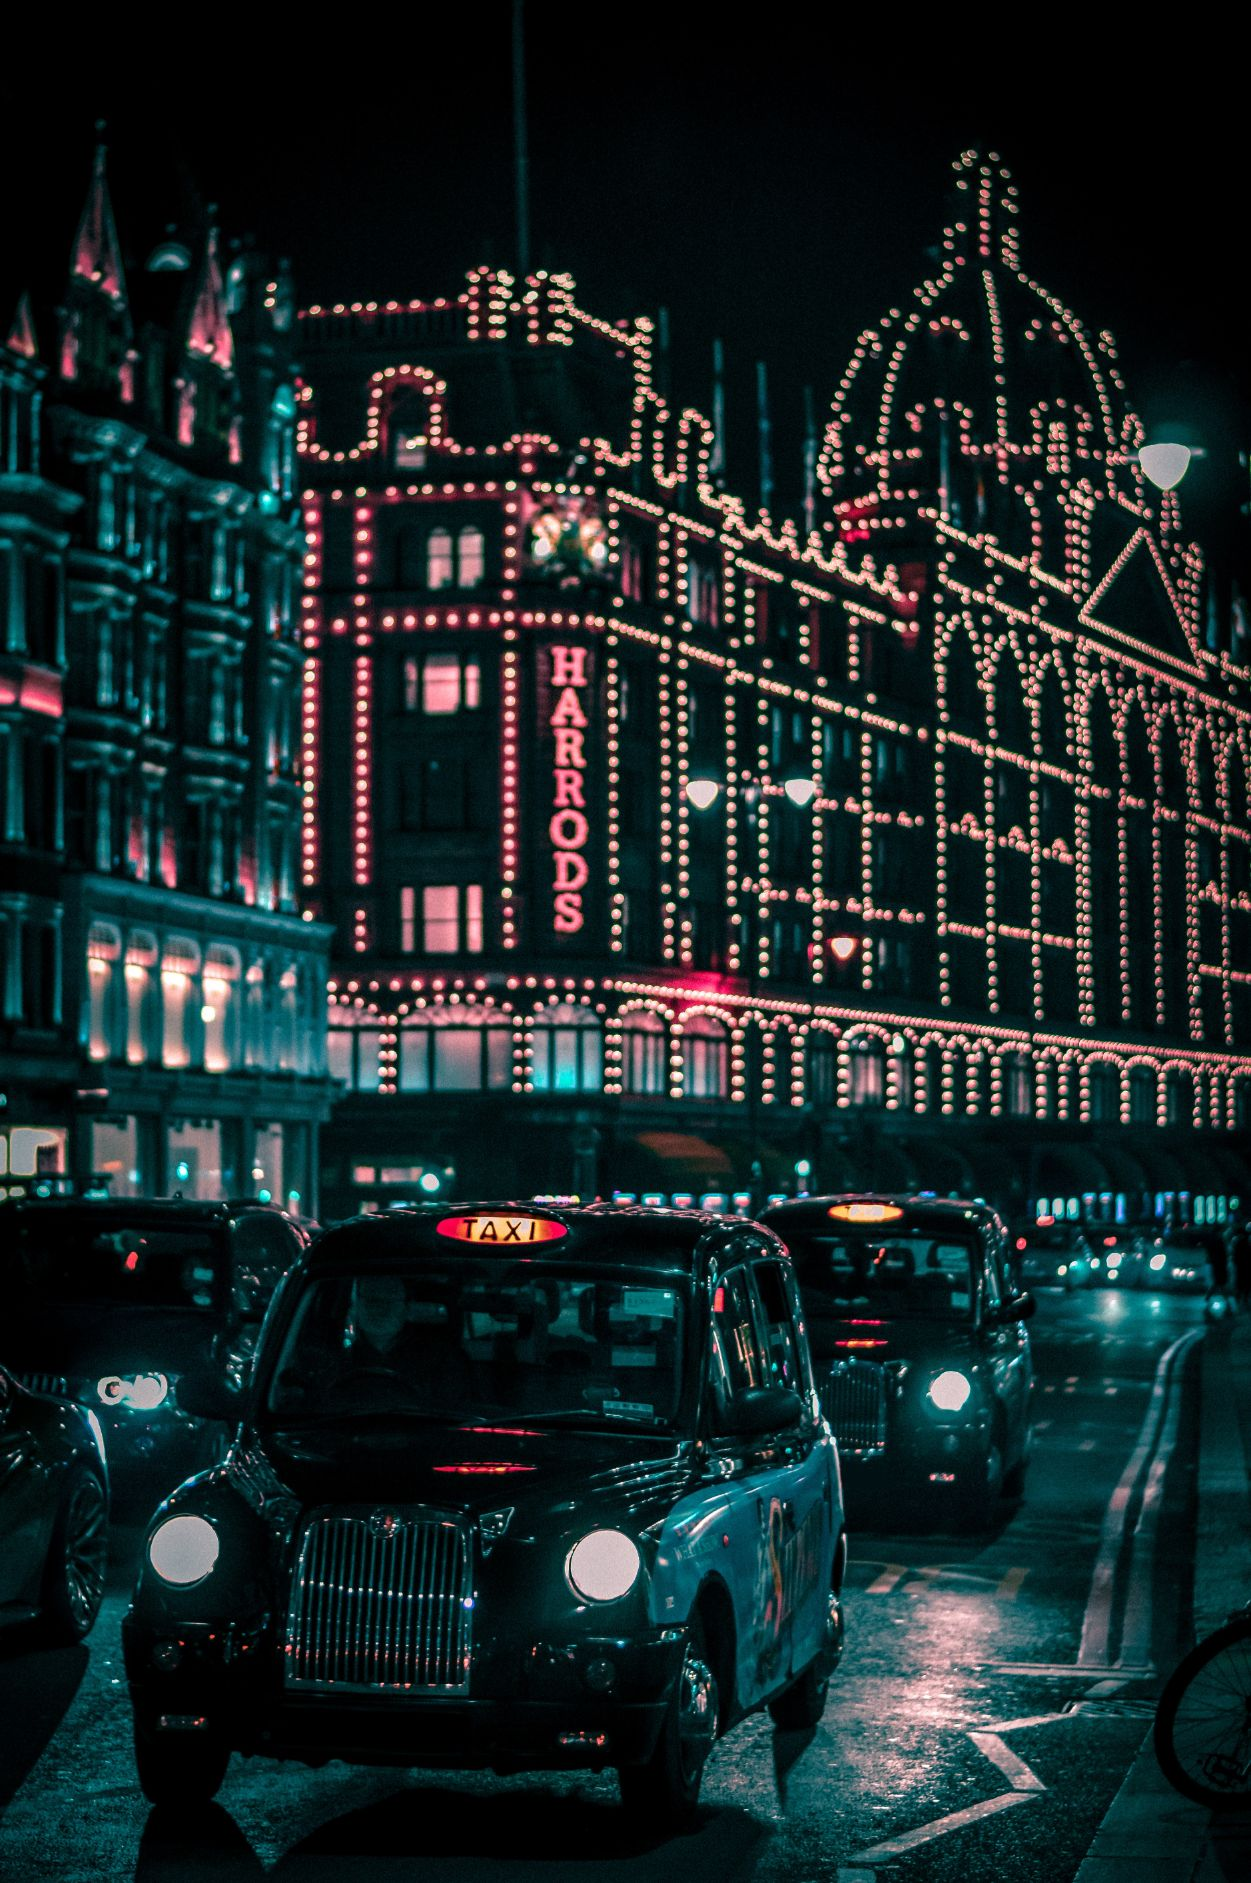 Taxis driving by Harrod's department store in London, England at night. Harrod's is lit up with decorative lights